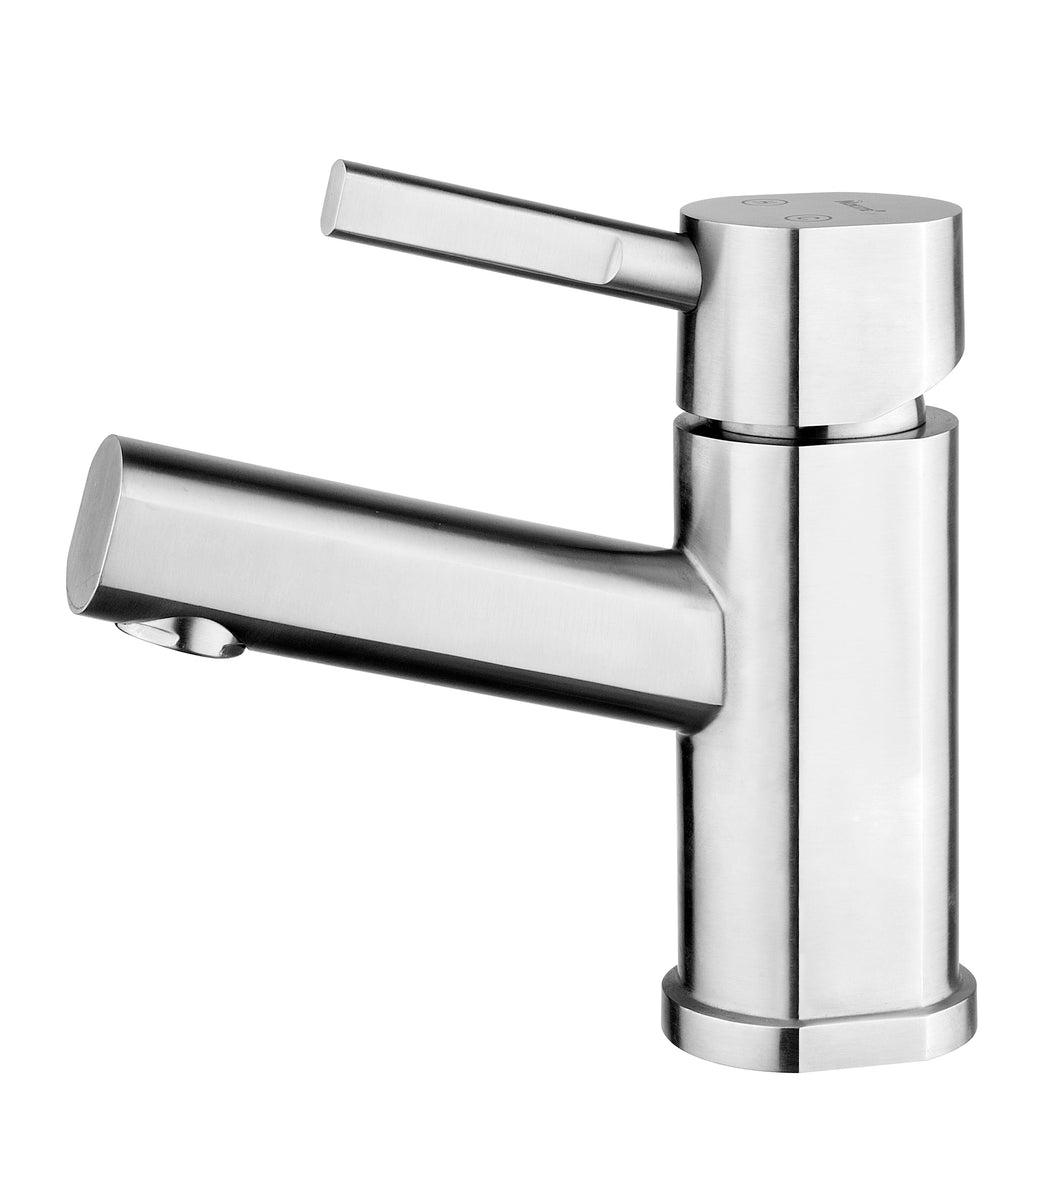 Whitehaus Waterhaus Solid Stainless Steel, Single Hole, Single Lever Lavatory Faucet in Brushed Stainless Steel in Default Title